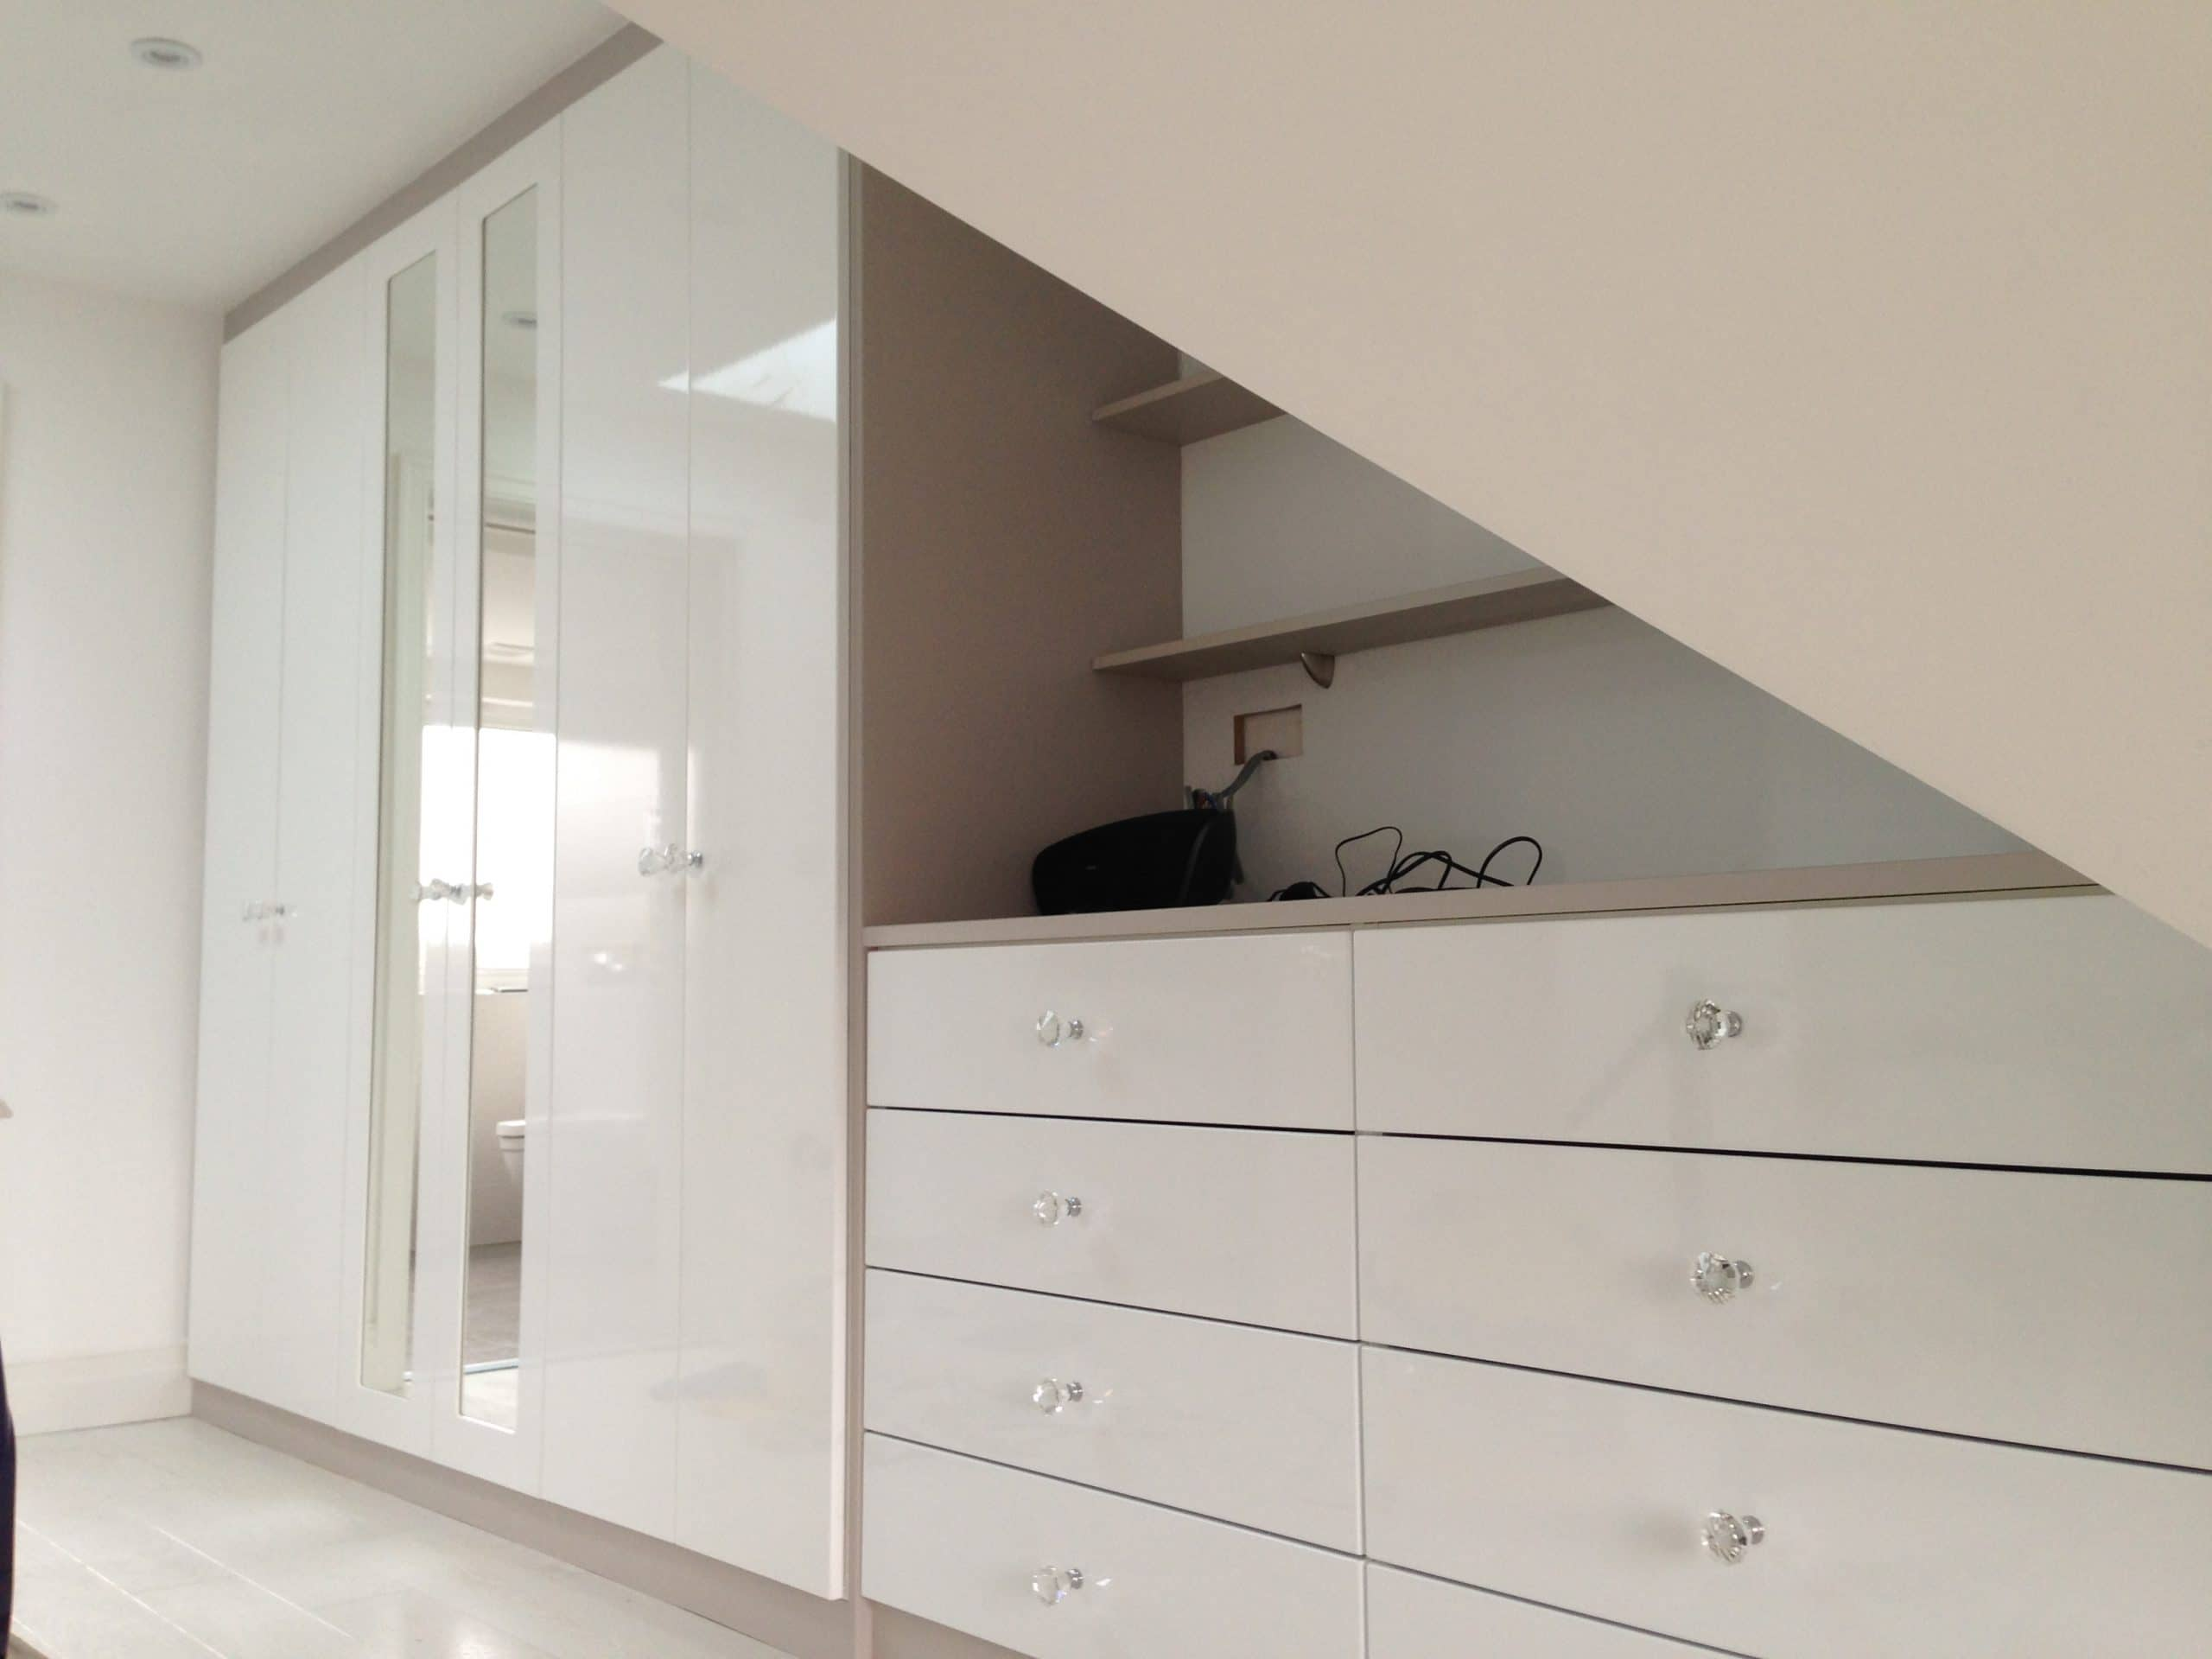 How To Maximise A Small Space When Living In London?